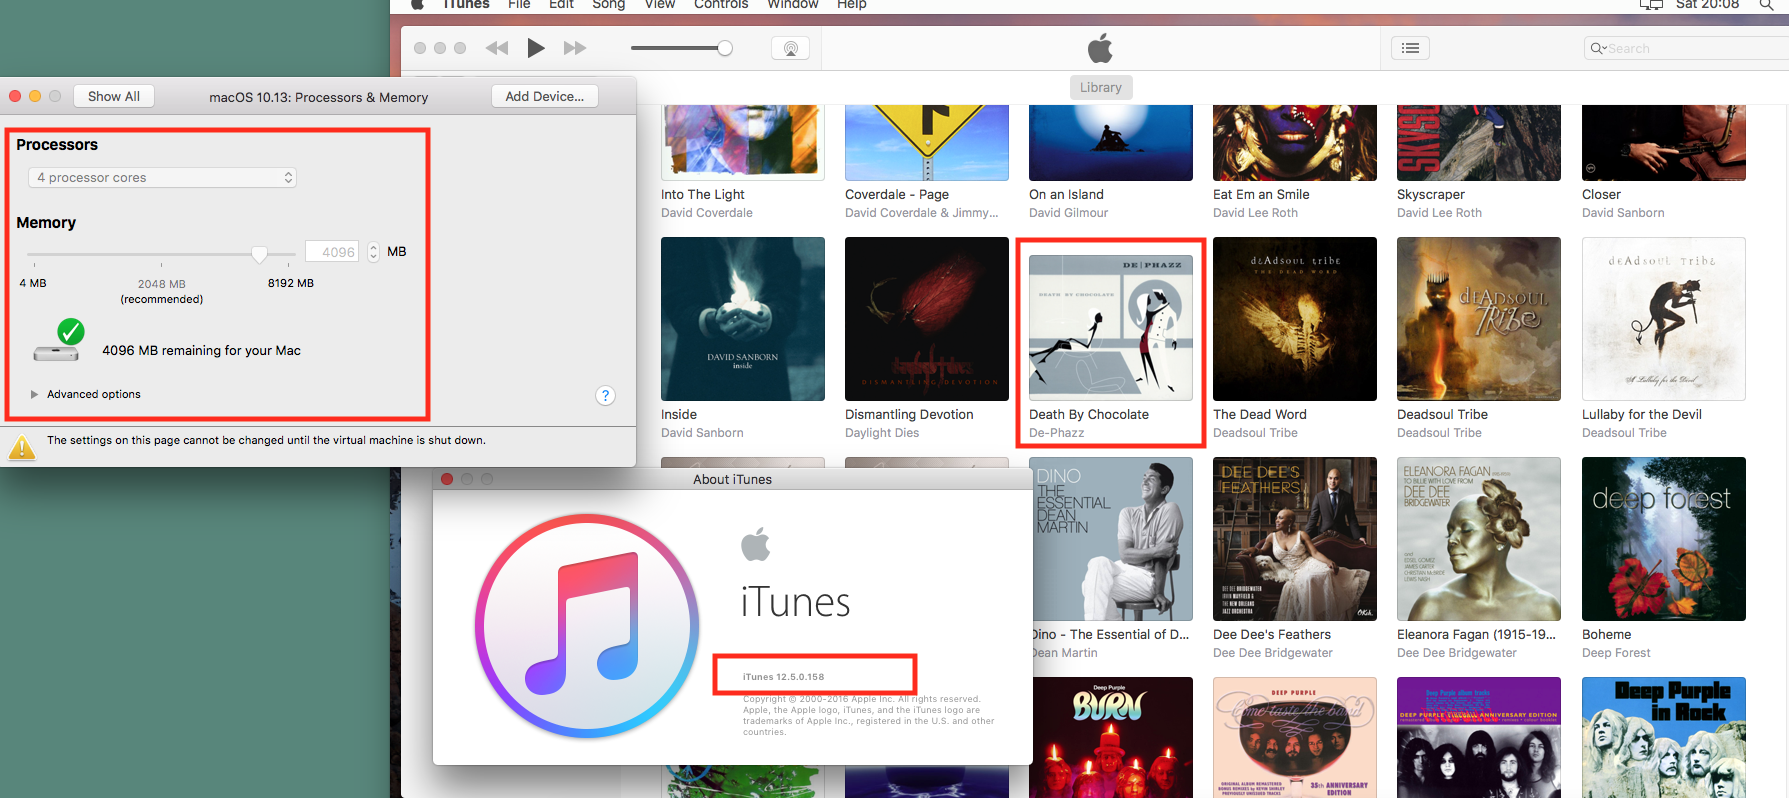 Dear Apple, it's a small ask, please fix iTunes - Patrick